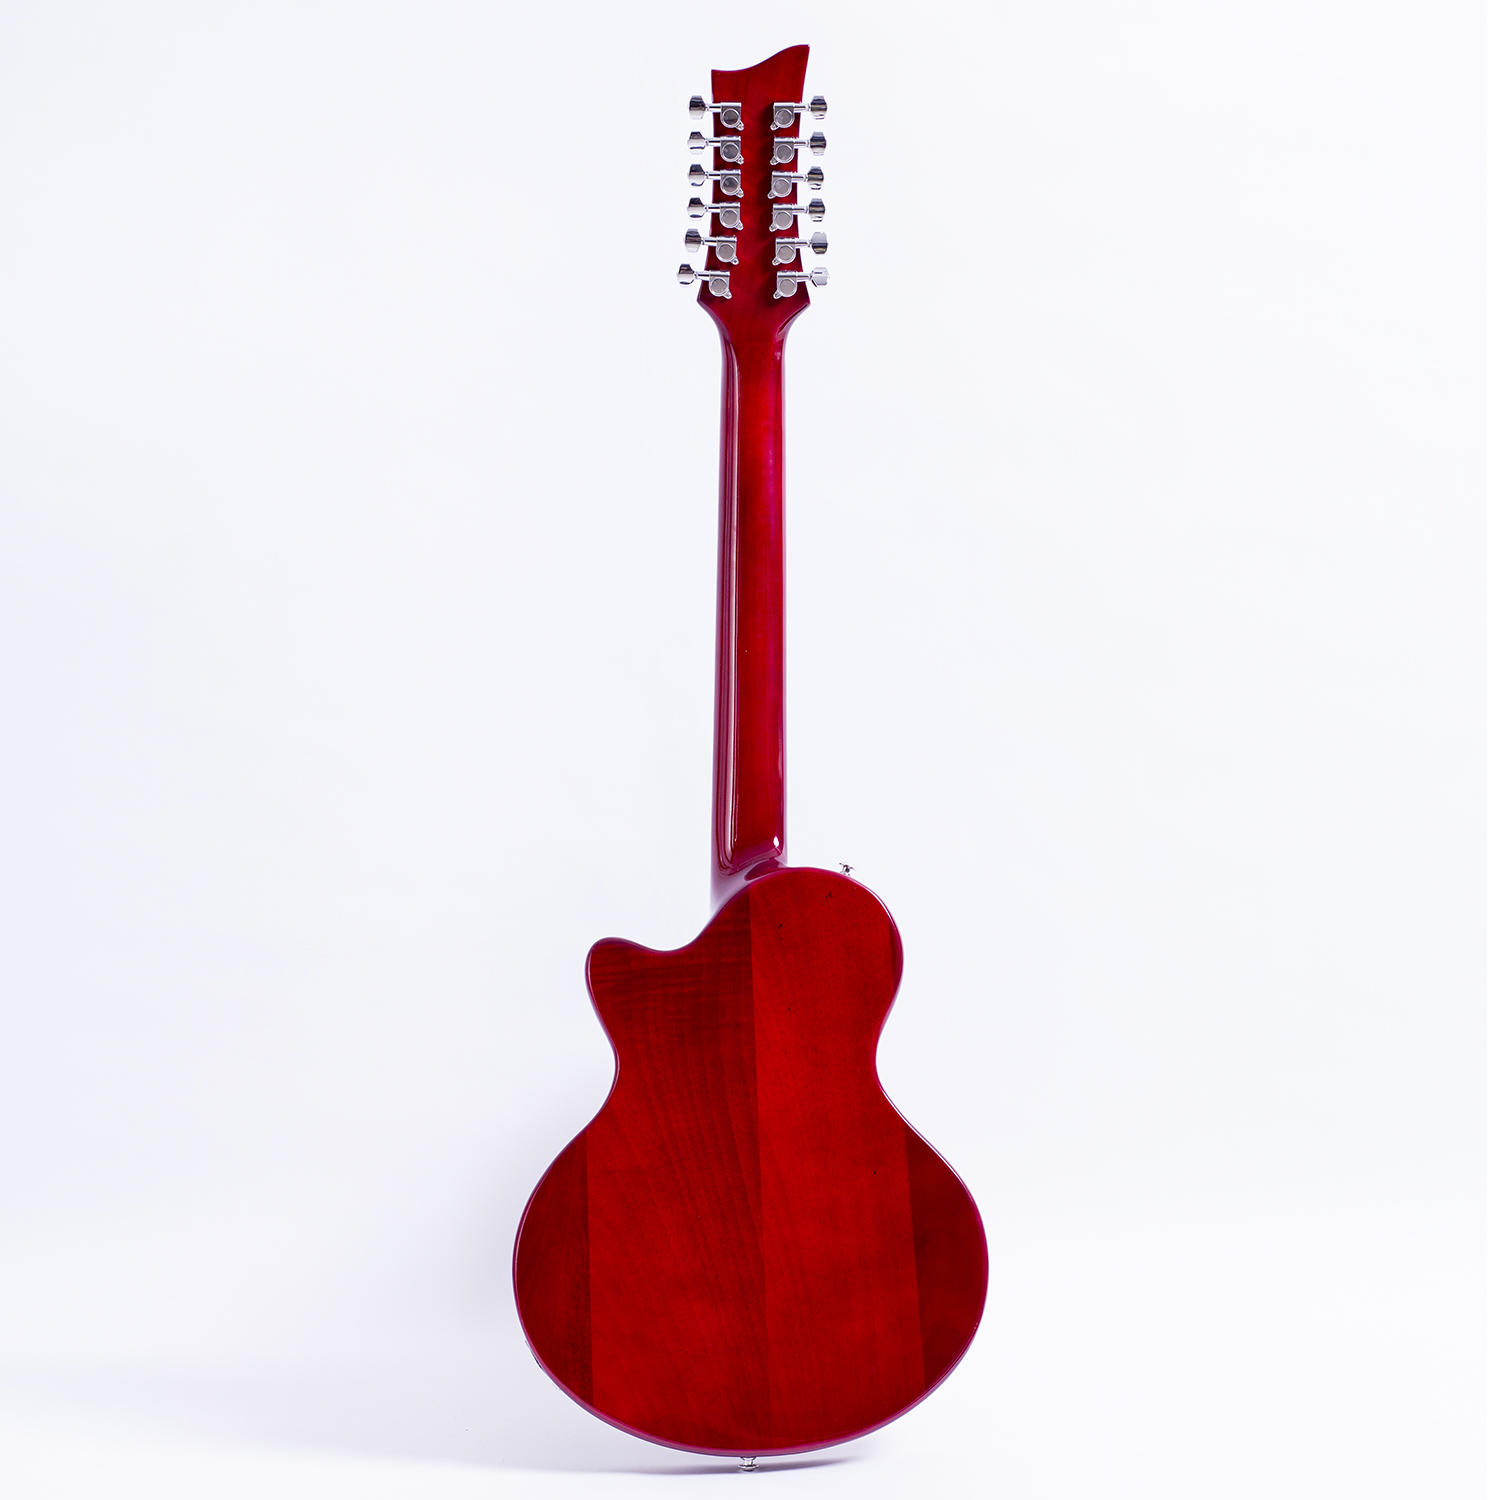 2019 grote electric guitar 12 strings semi hollow flame maple top flower inlay ebay. Black Bedroom Furniture Sets. Home Design Ideas